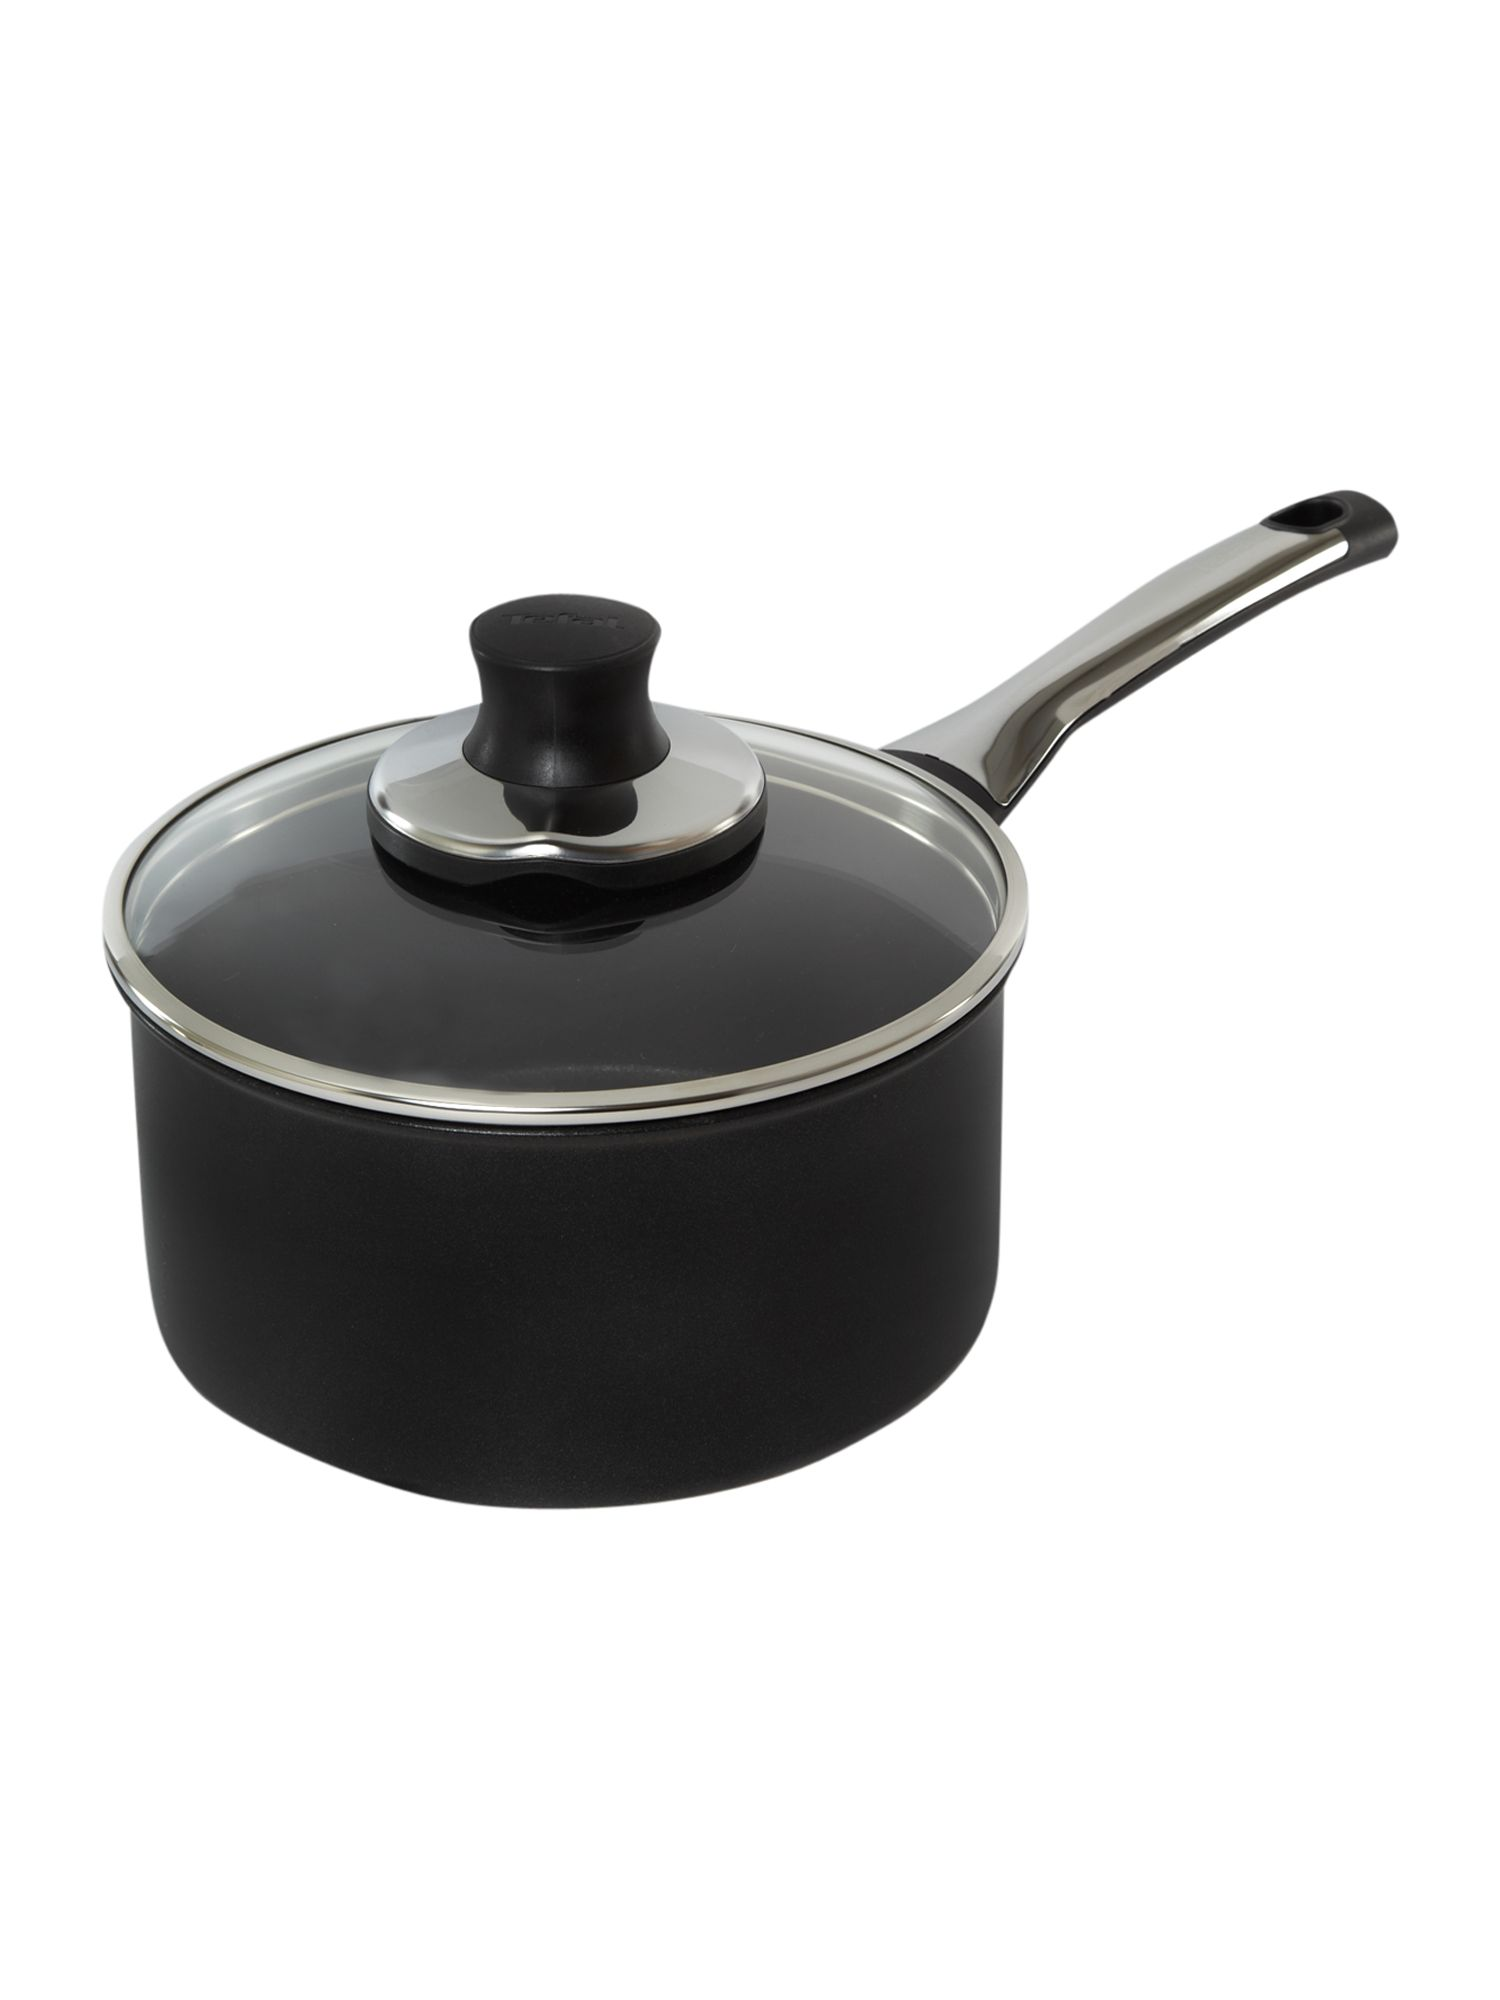 Tefal Tefal Preference Pro Saucepan with lid 20cm